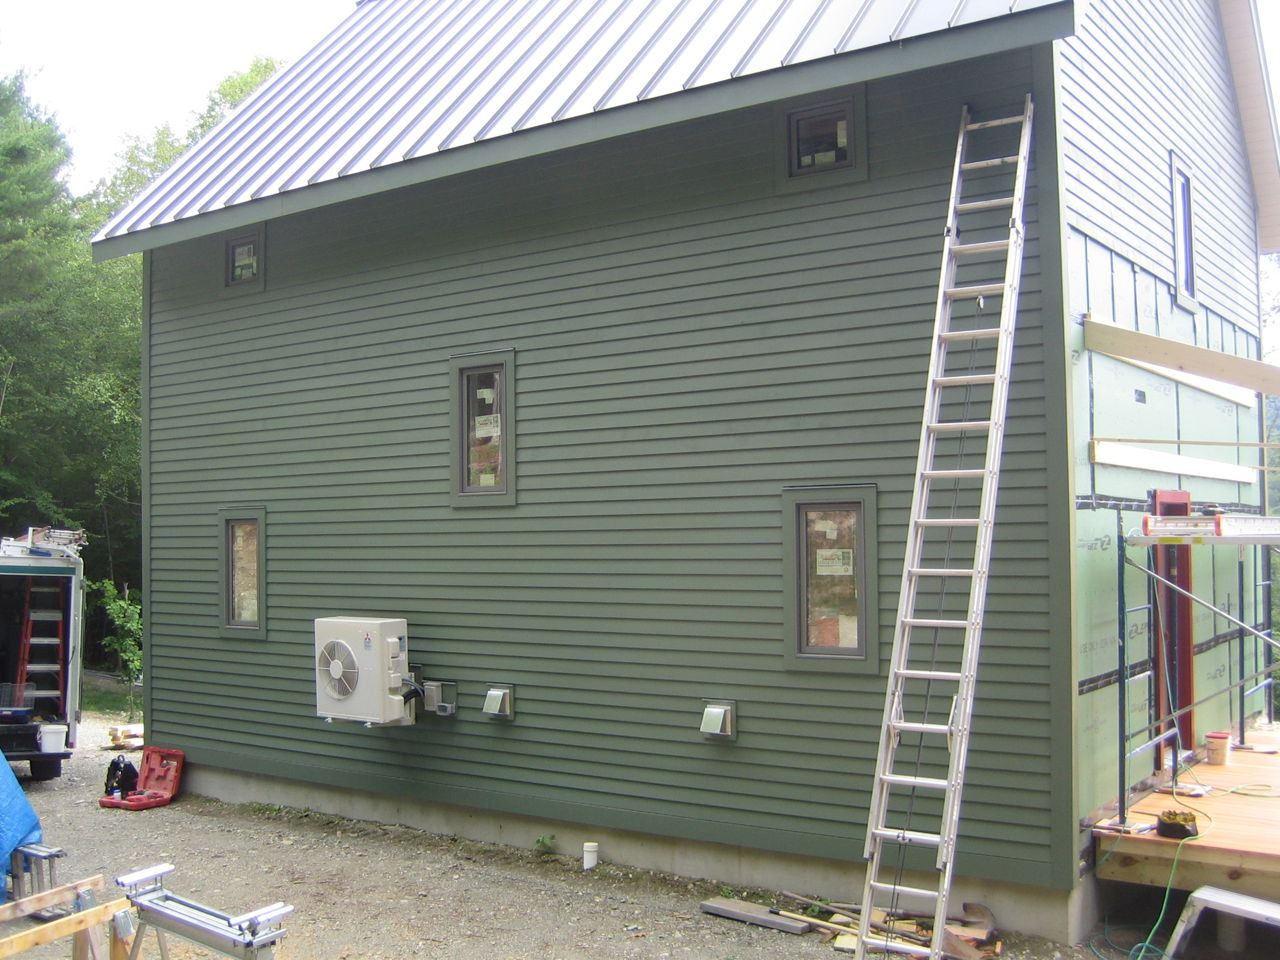 Building an open shed roof dog house over it is better than nothing  #4E577D